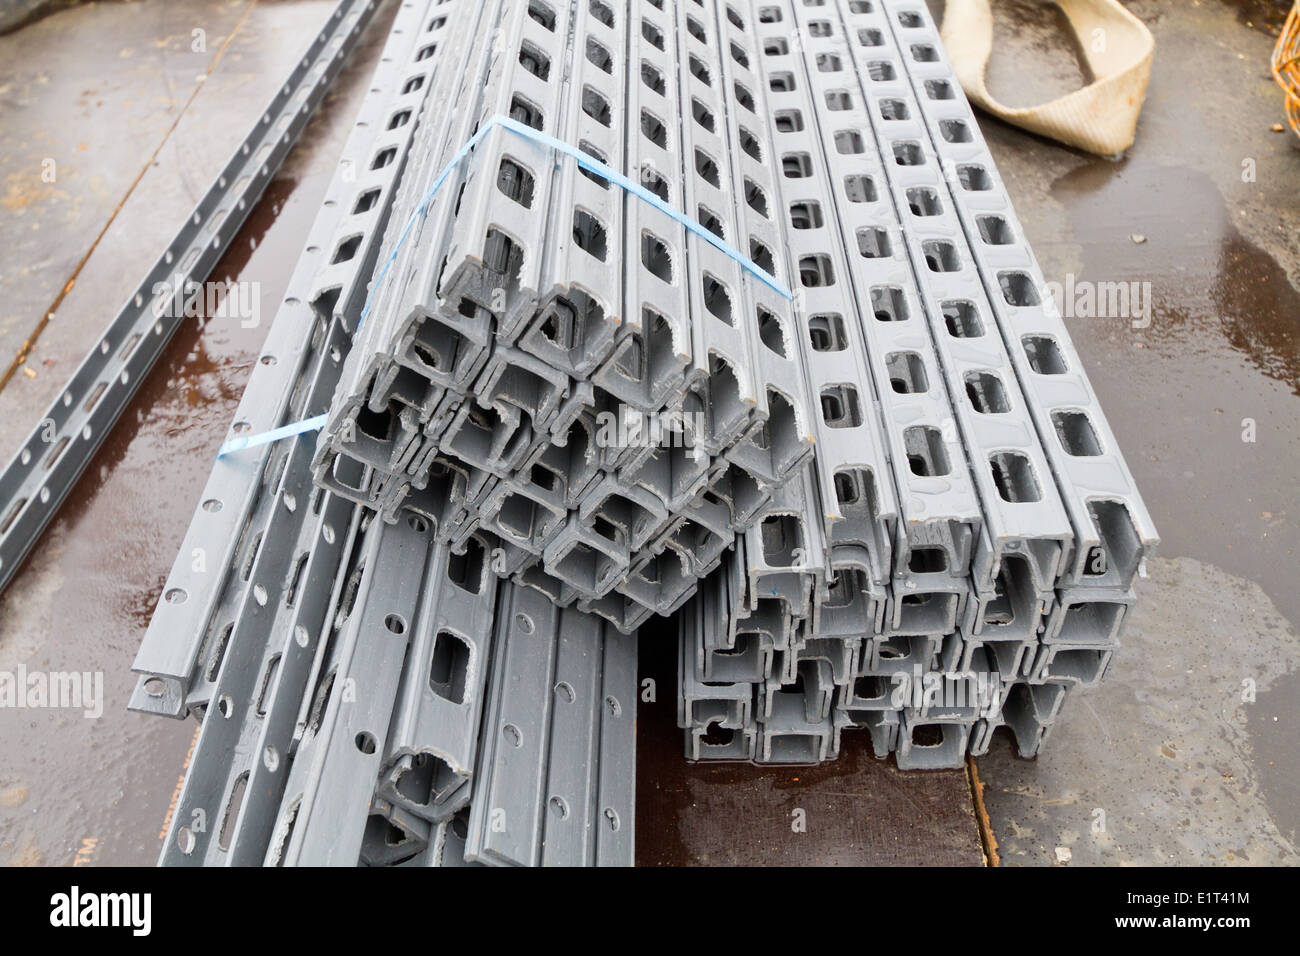 Plastic spacers in a bundle on a building site in Denmark - used with reinforcement for concrete floors and beams - Stock Image